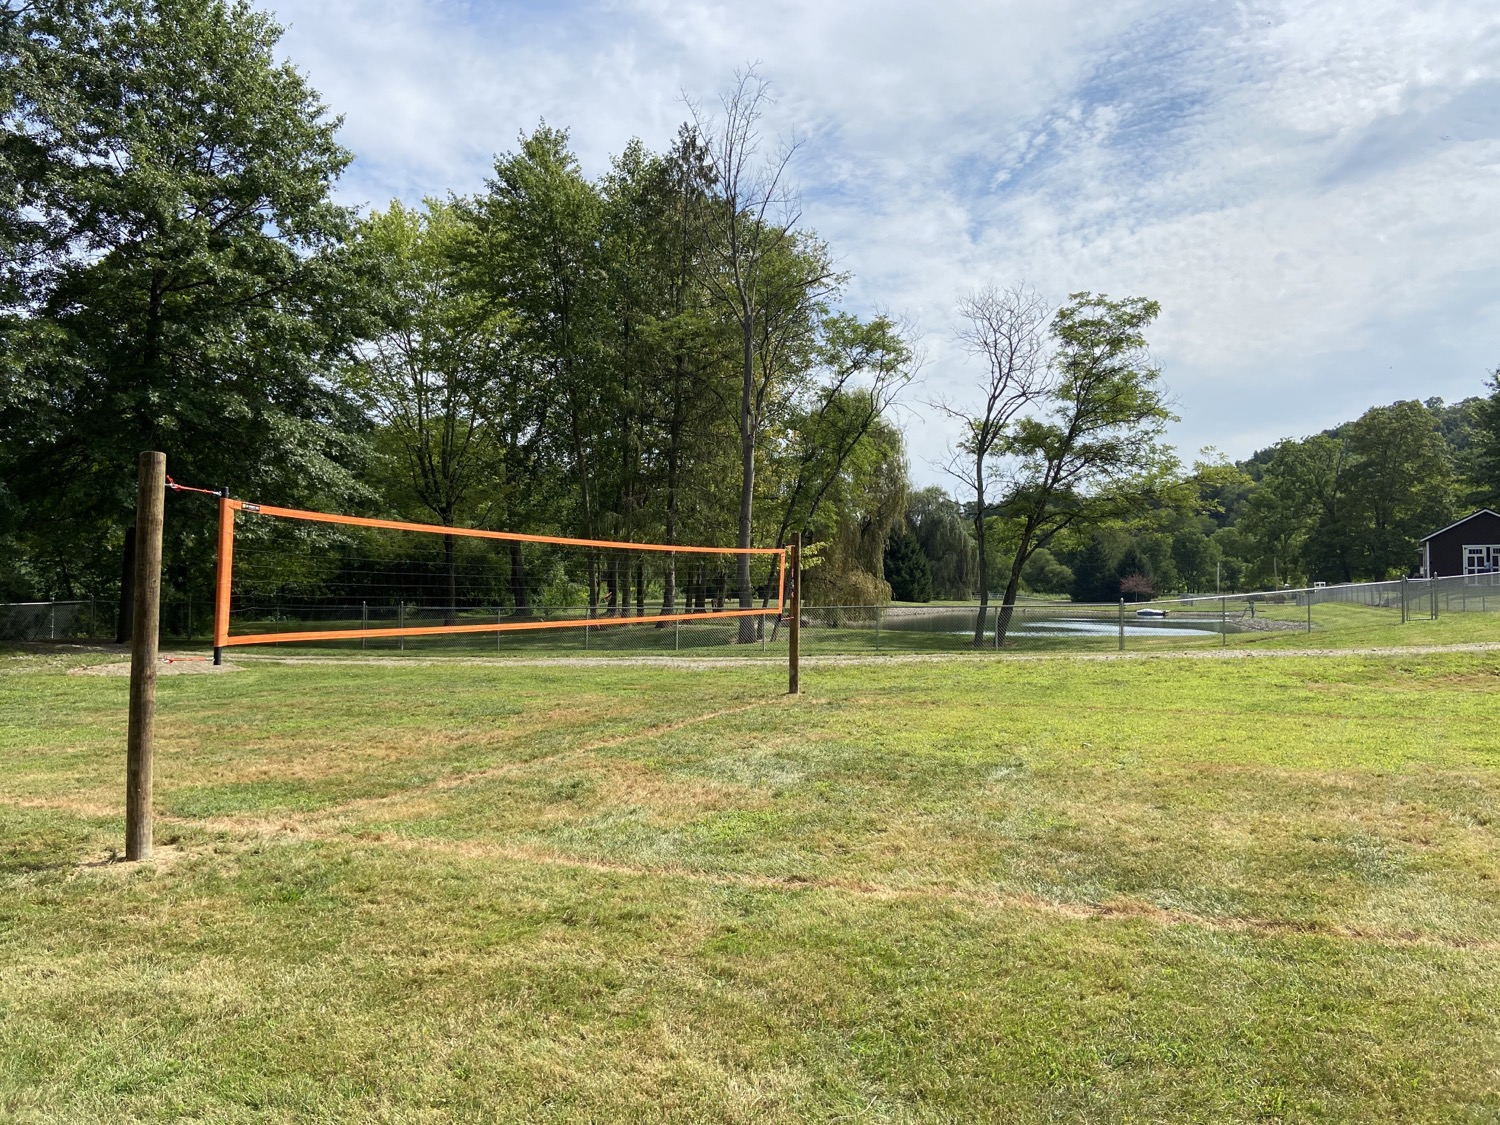 Grass volleyball court w/ net